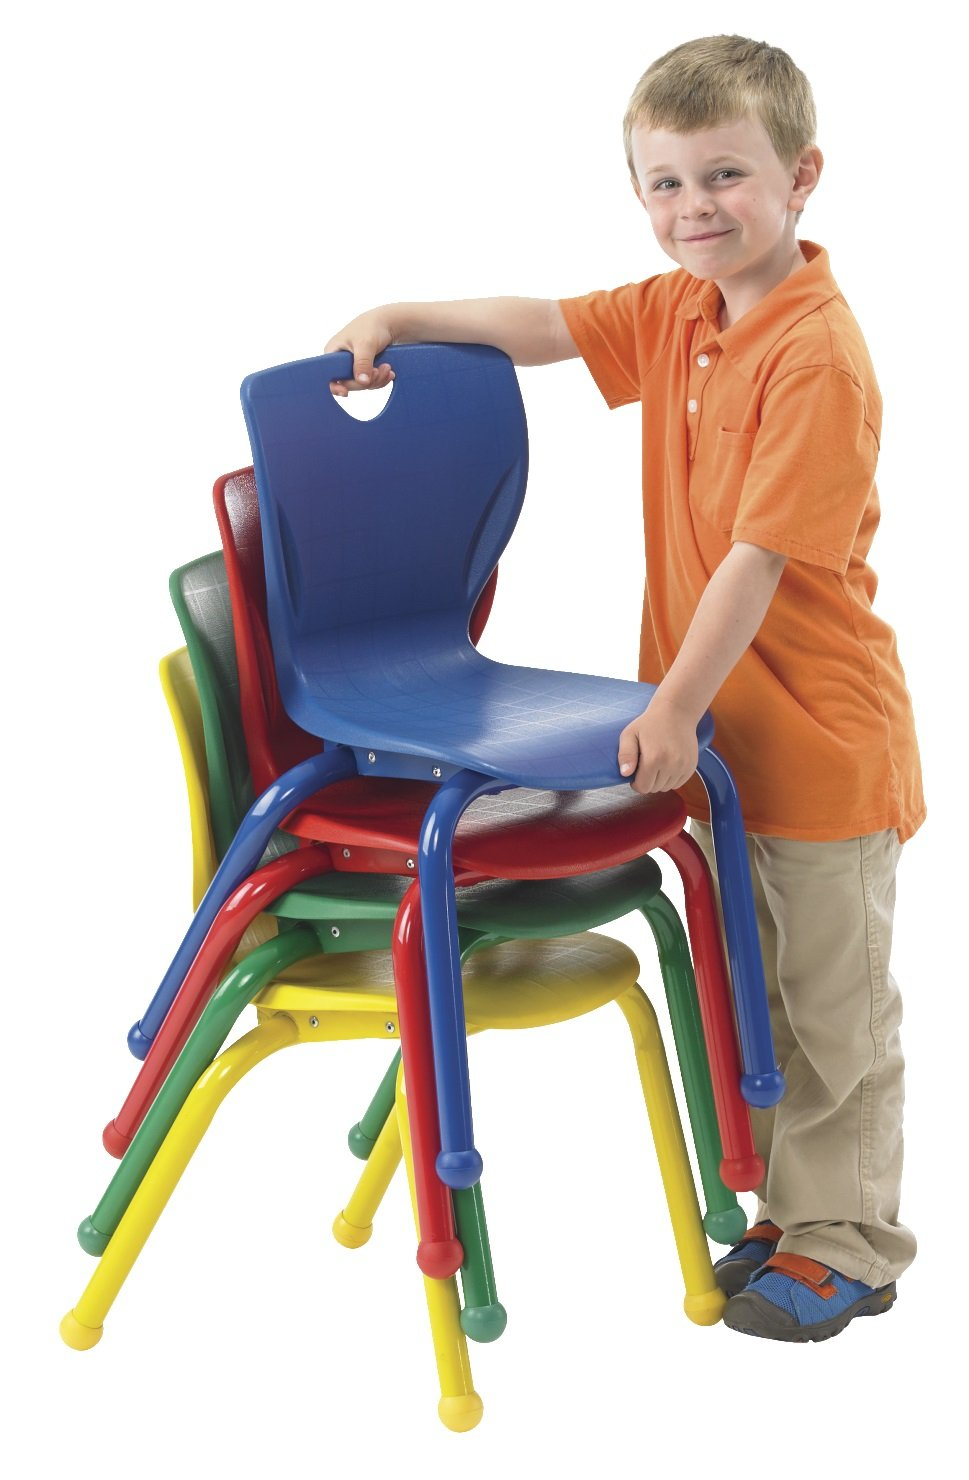 Classroom Select 1544263 14'' Contemporary Chair with Ball Glides, 1 Each of 4 Colors 24.25'' Height, 11.5'' Width, 12'' Length, Assorted (Pack of 4)